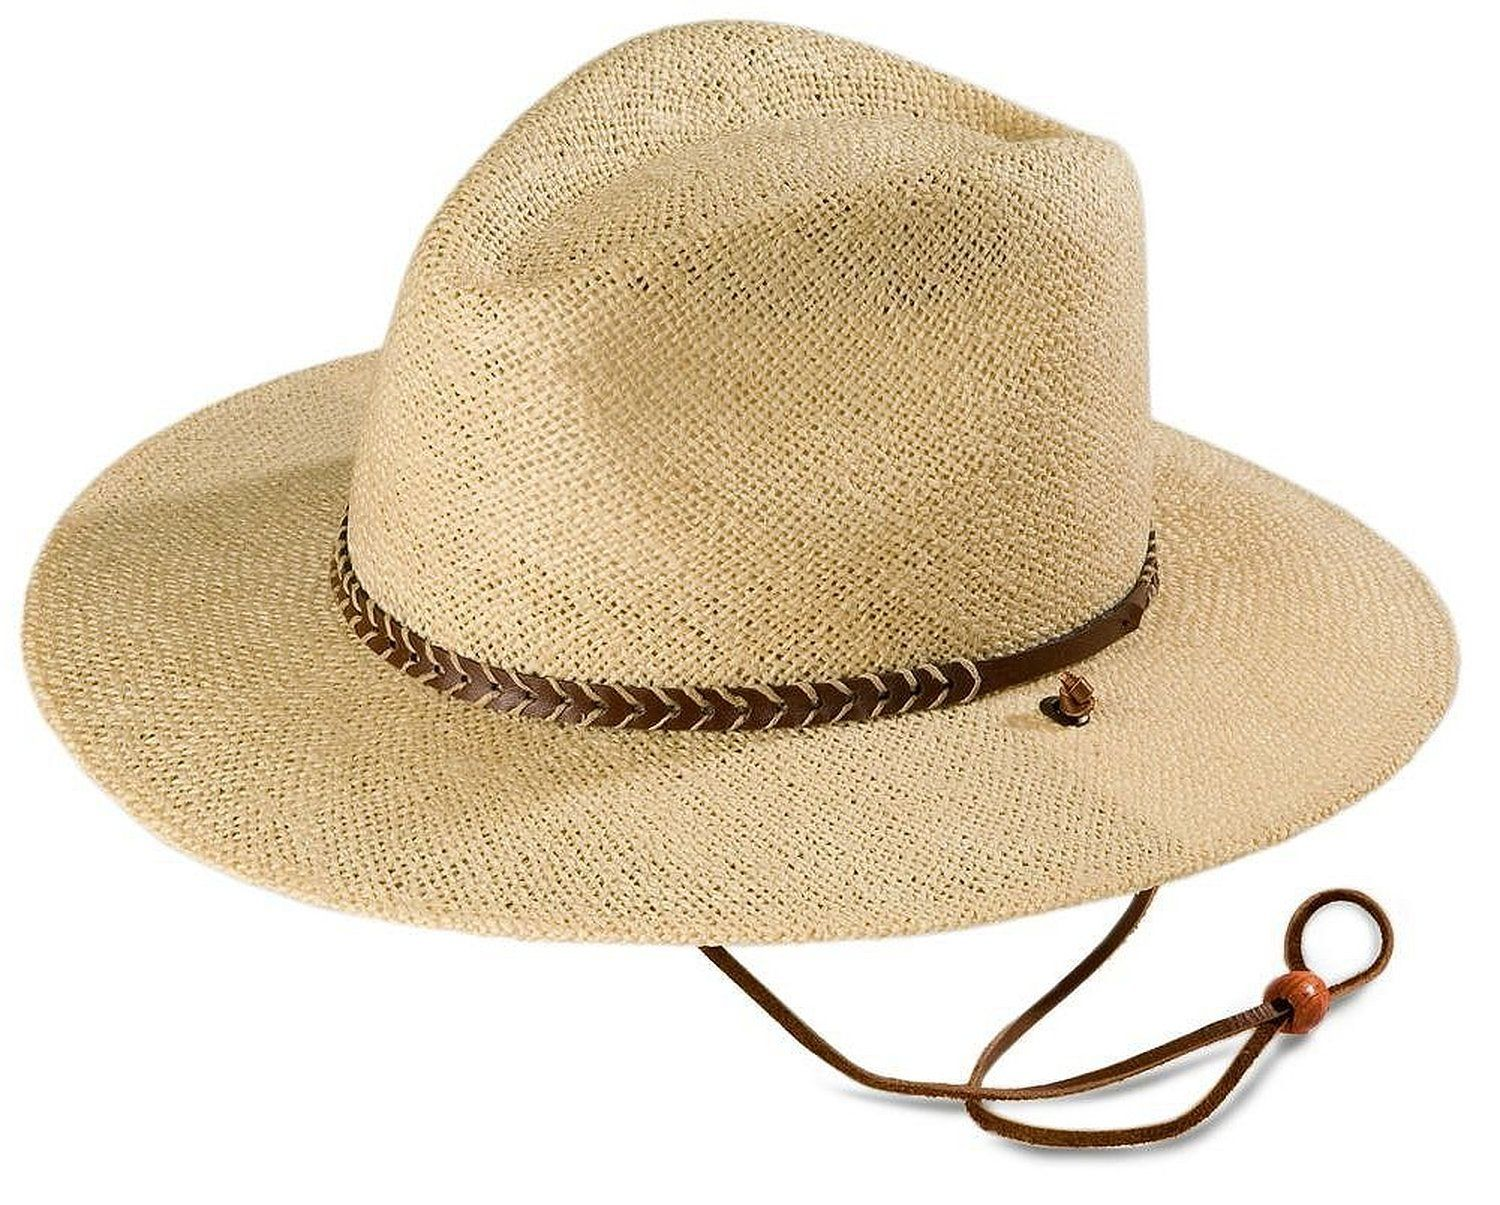 c416fd2abce Stetson Men s Lakeland Uv Protection Straw Hat at Amazon Men s Clothing  store  Cowboy Hats